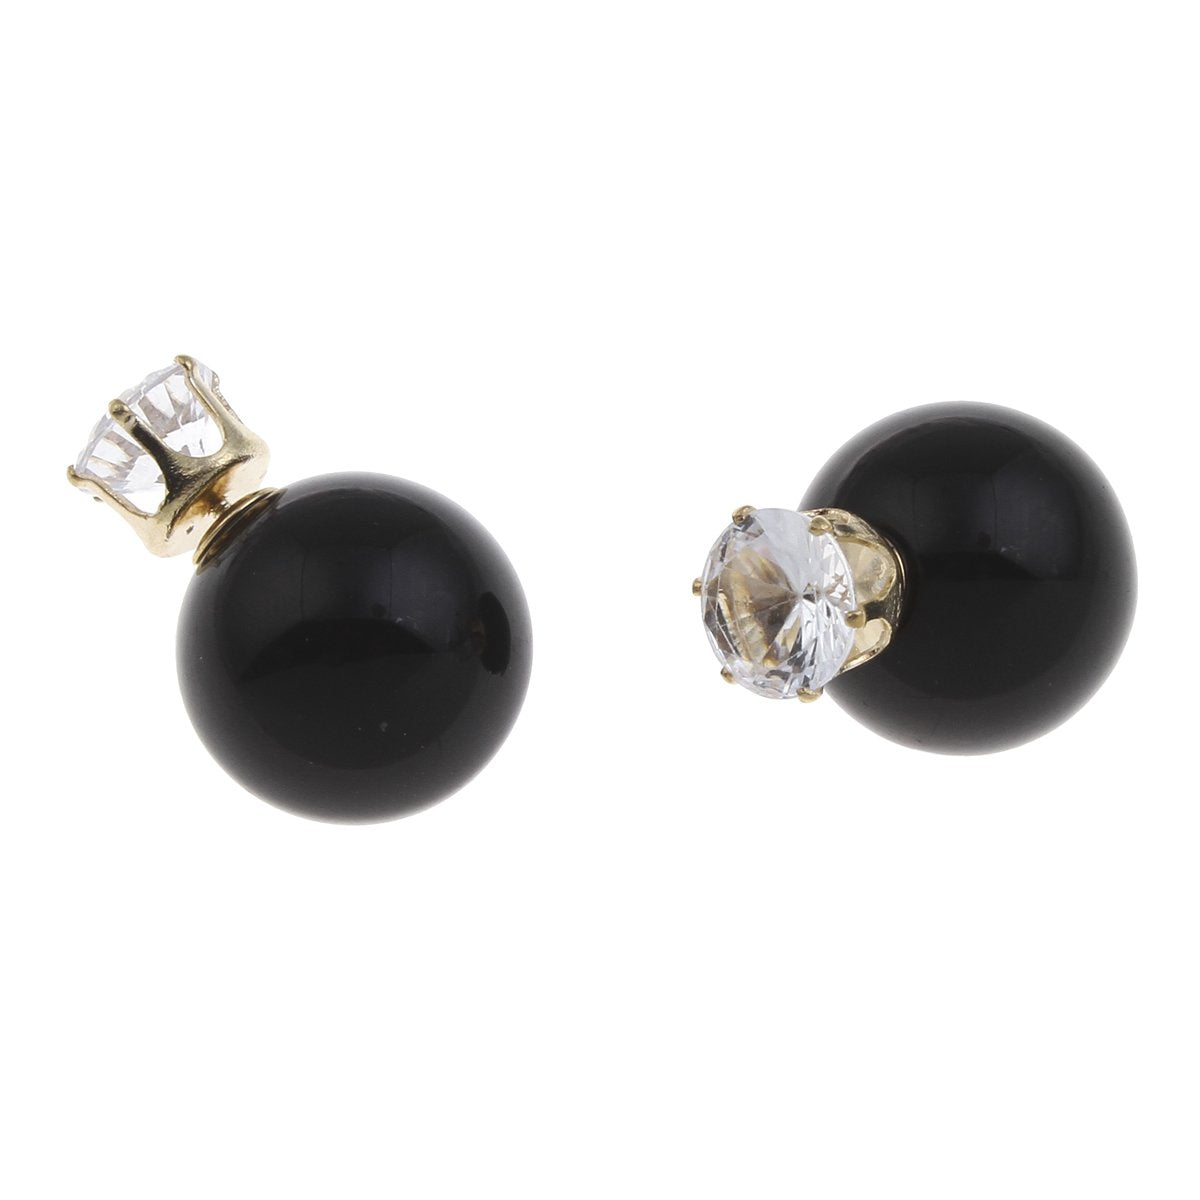 18K Gold Onyx & Cz Double Sided Earrings